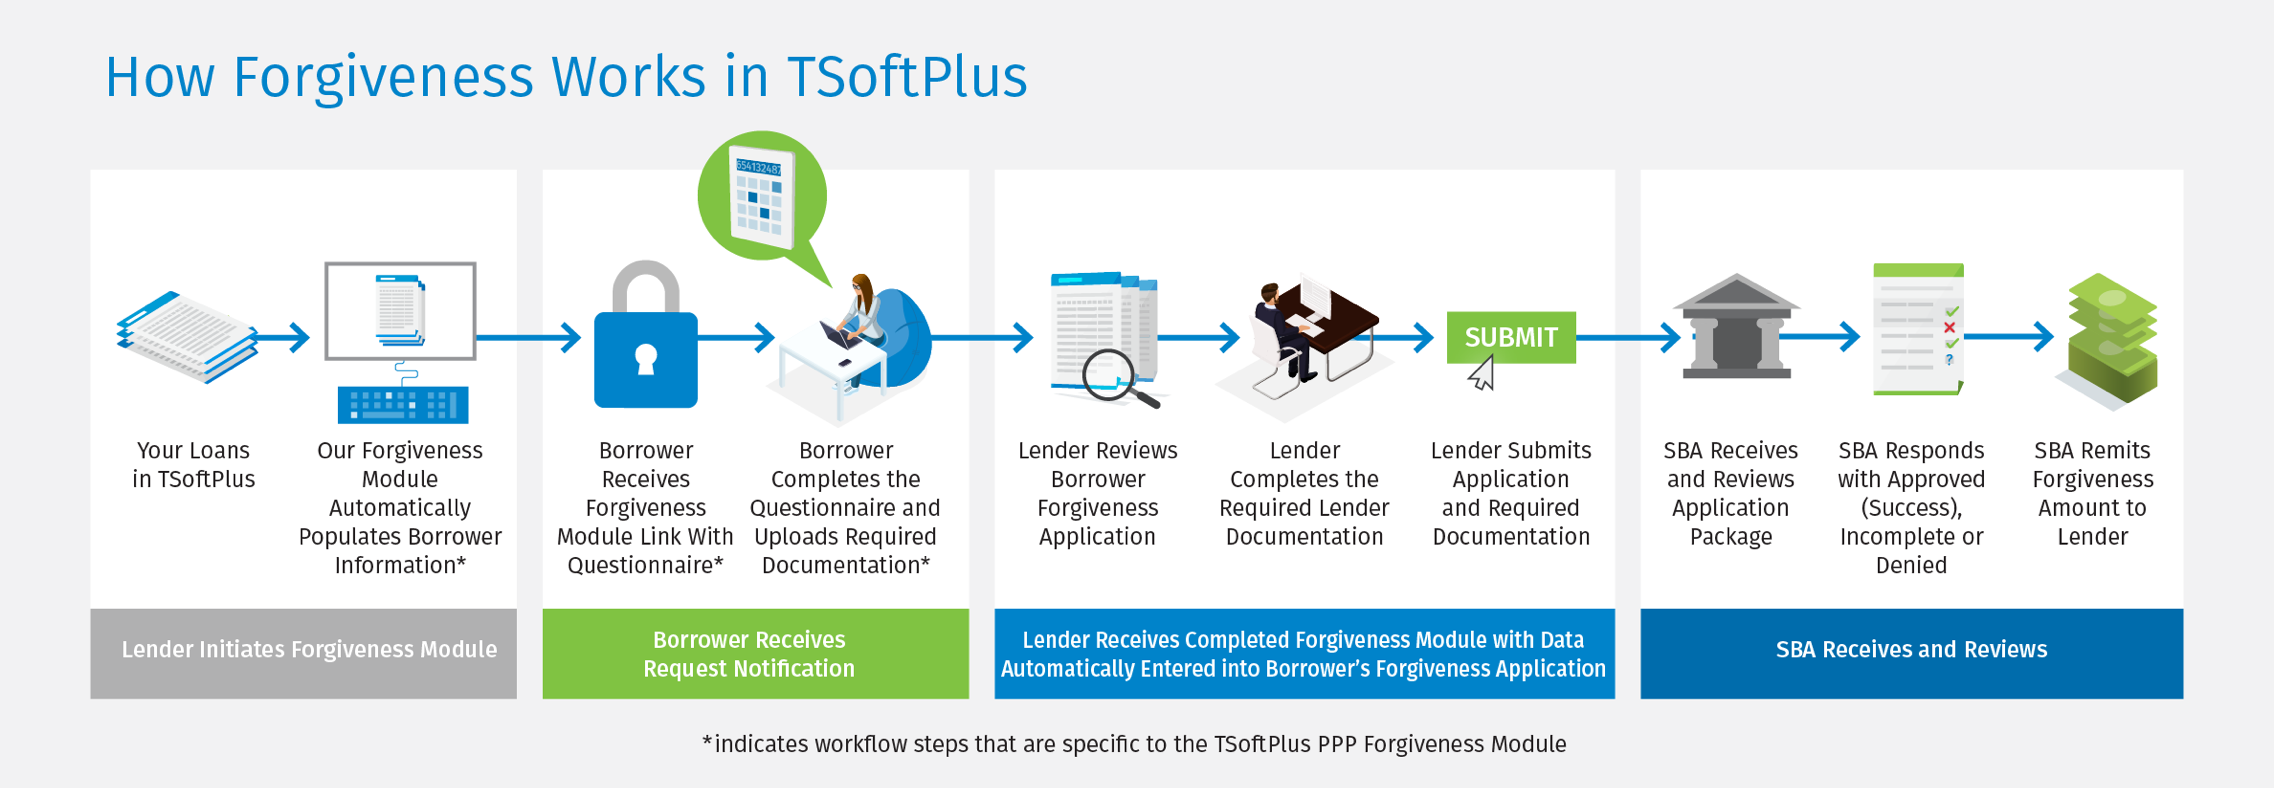 Diagram depicting how Forgiveness loans work in TSoftPlus